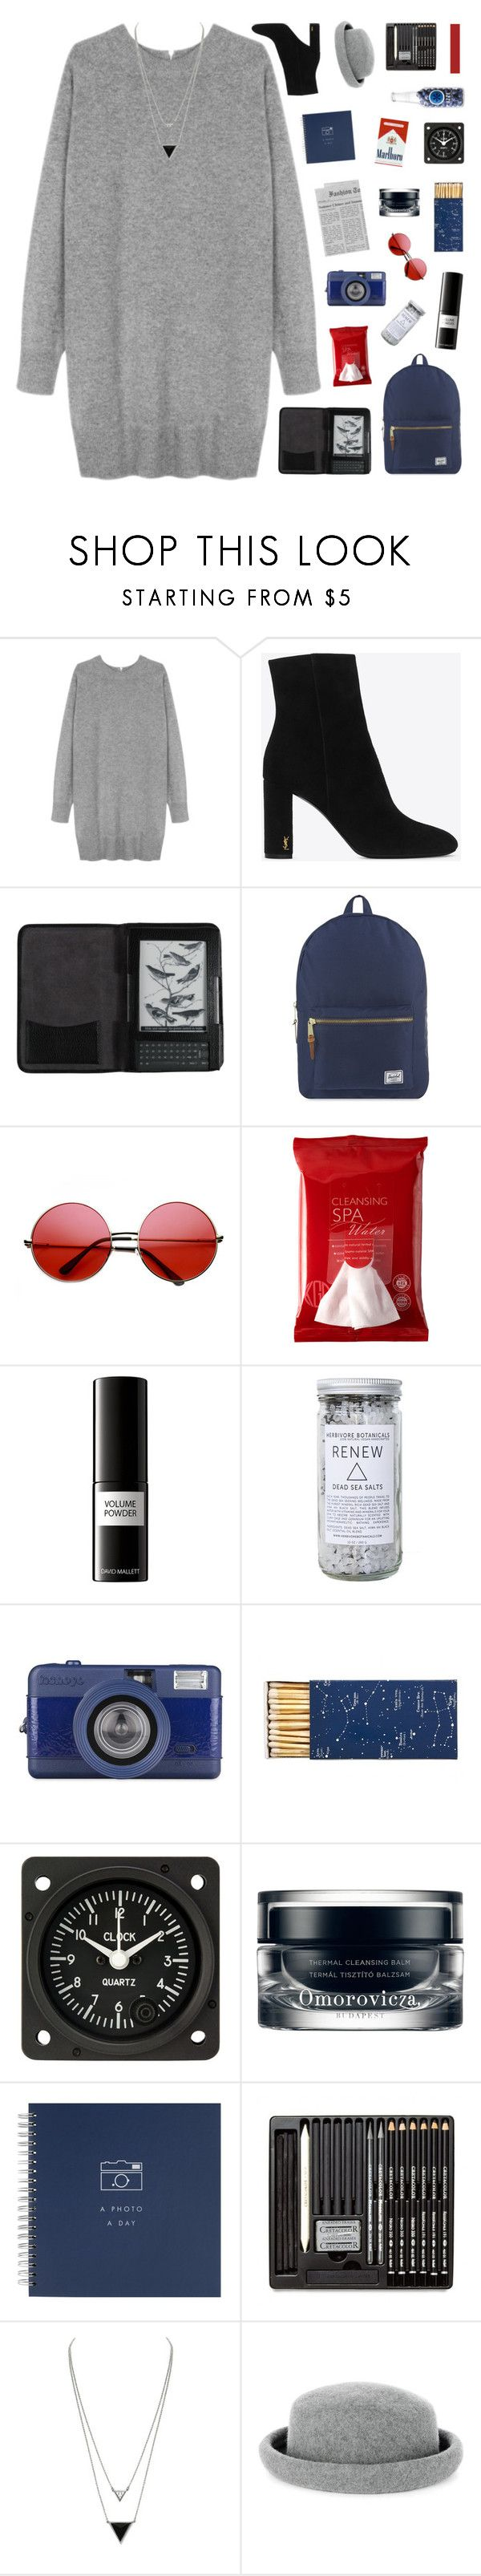 """""""you ain't really wild, you a tourist"""" by enchantedmist ❤ liked on Polyvore featuring Wood Wood, Yves Saint Laurent, Cole Haan, Herschel Supply Co., INDIE HAIR, Koh Gen Do, David Mallett, Herbivore, Jayson Home and Omorovicza"""